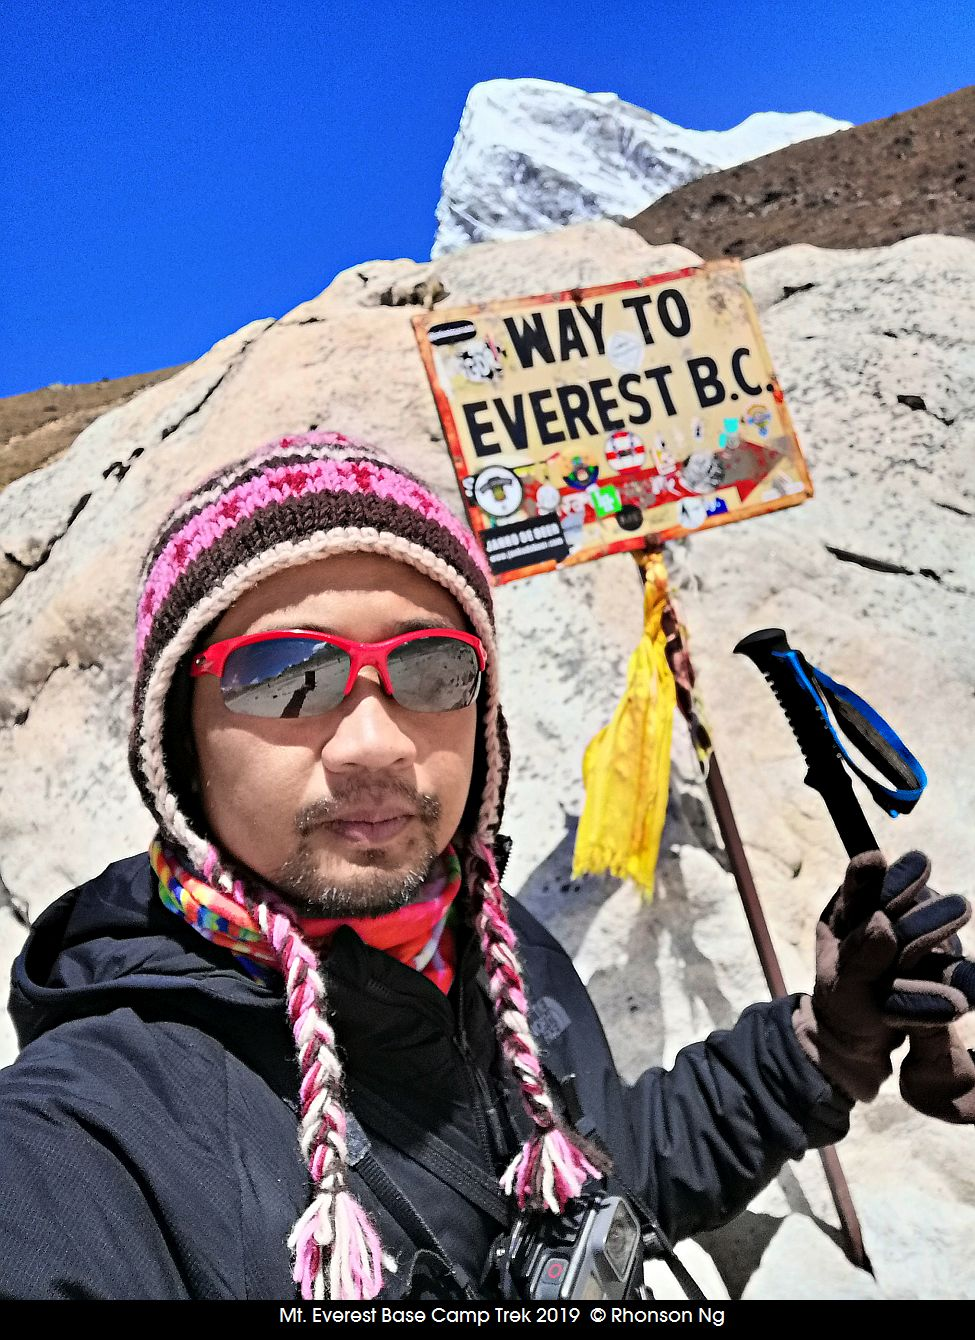 Rhonson on his way to Everest Base Camp